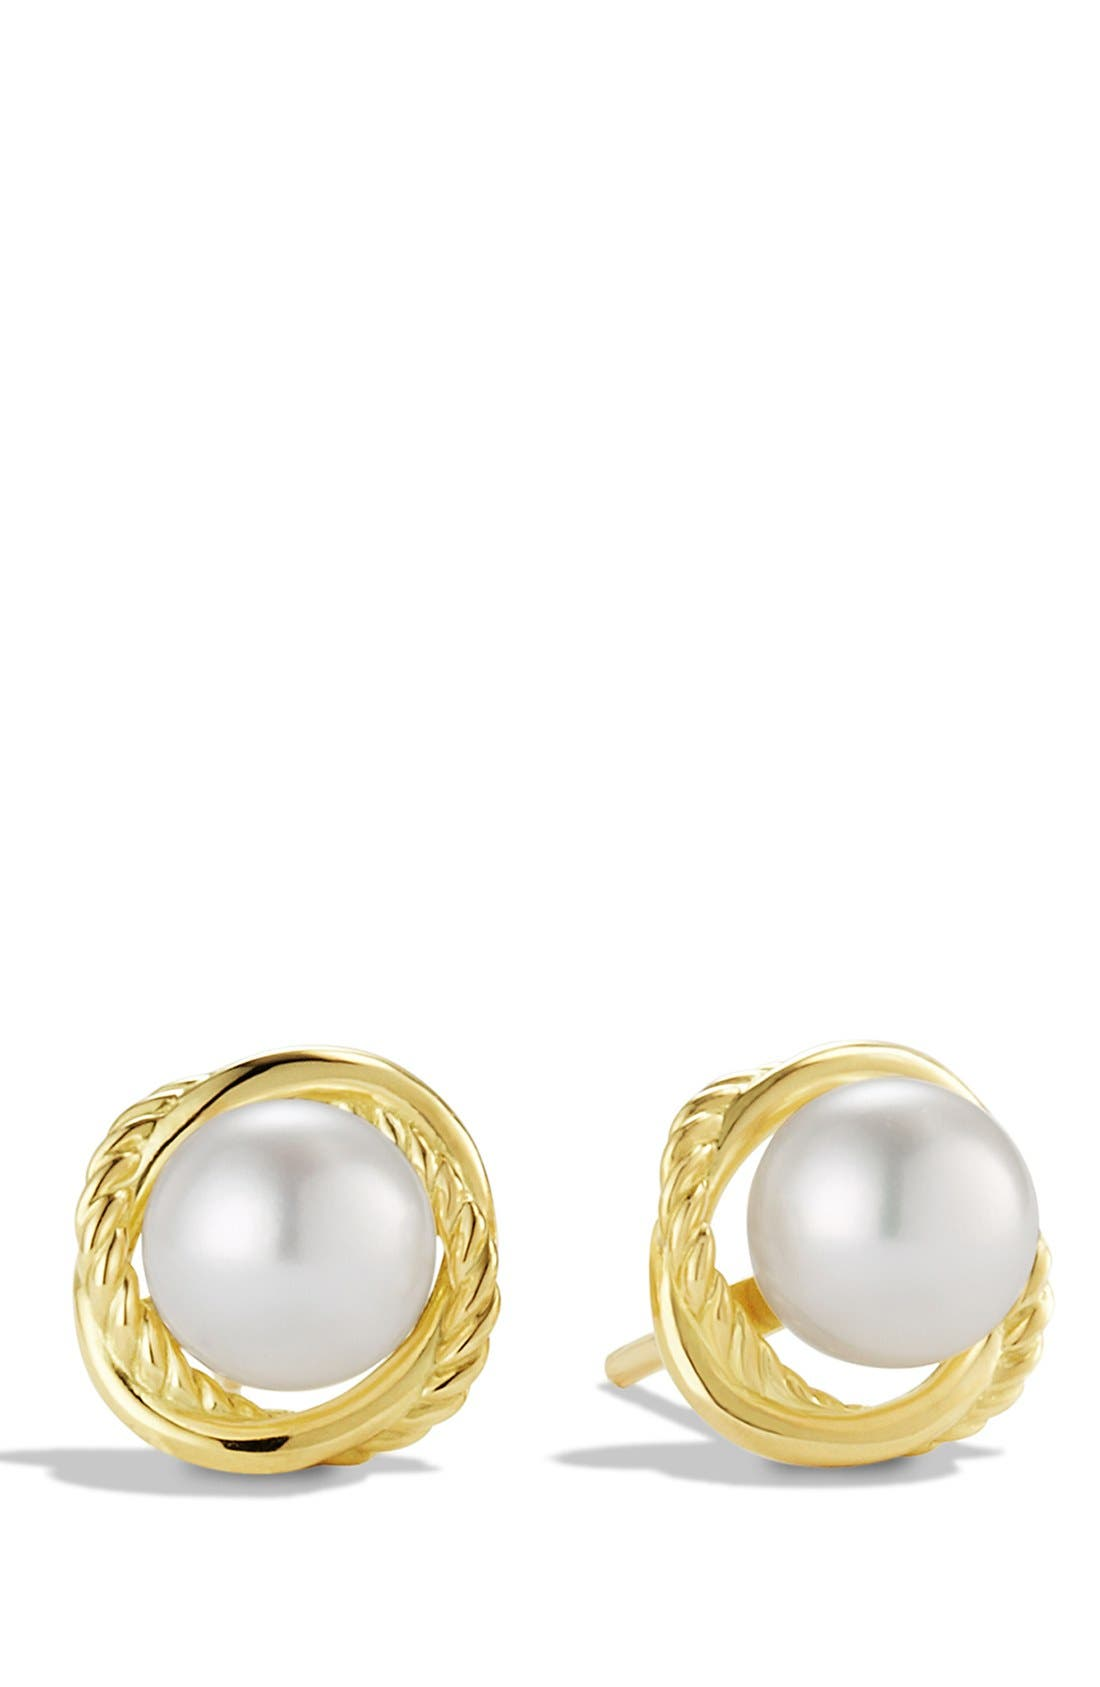 'Infinity' Earrings with Pearls in Gold,                             Main thumbnail 1, color,                             Pearl